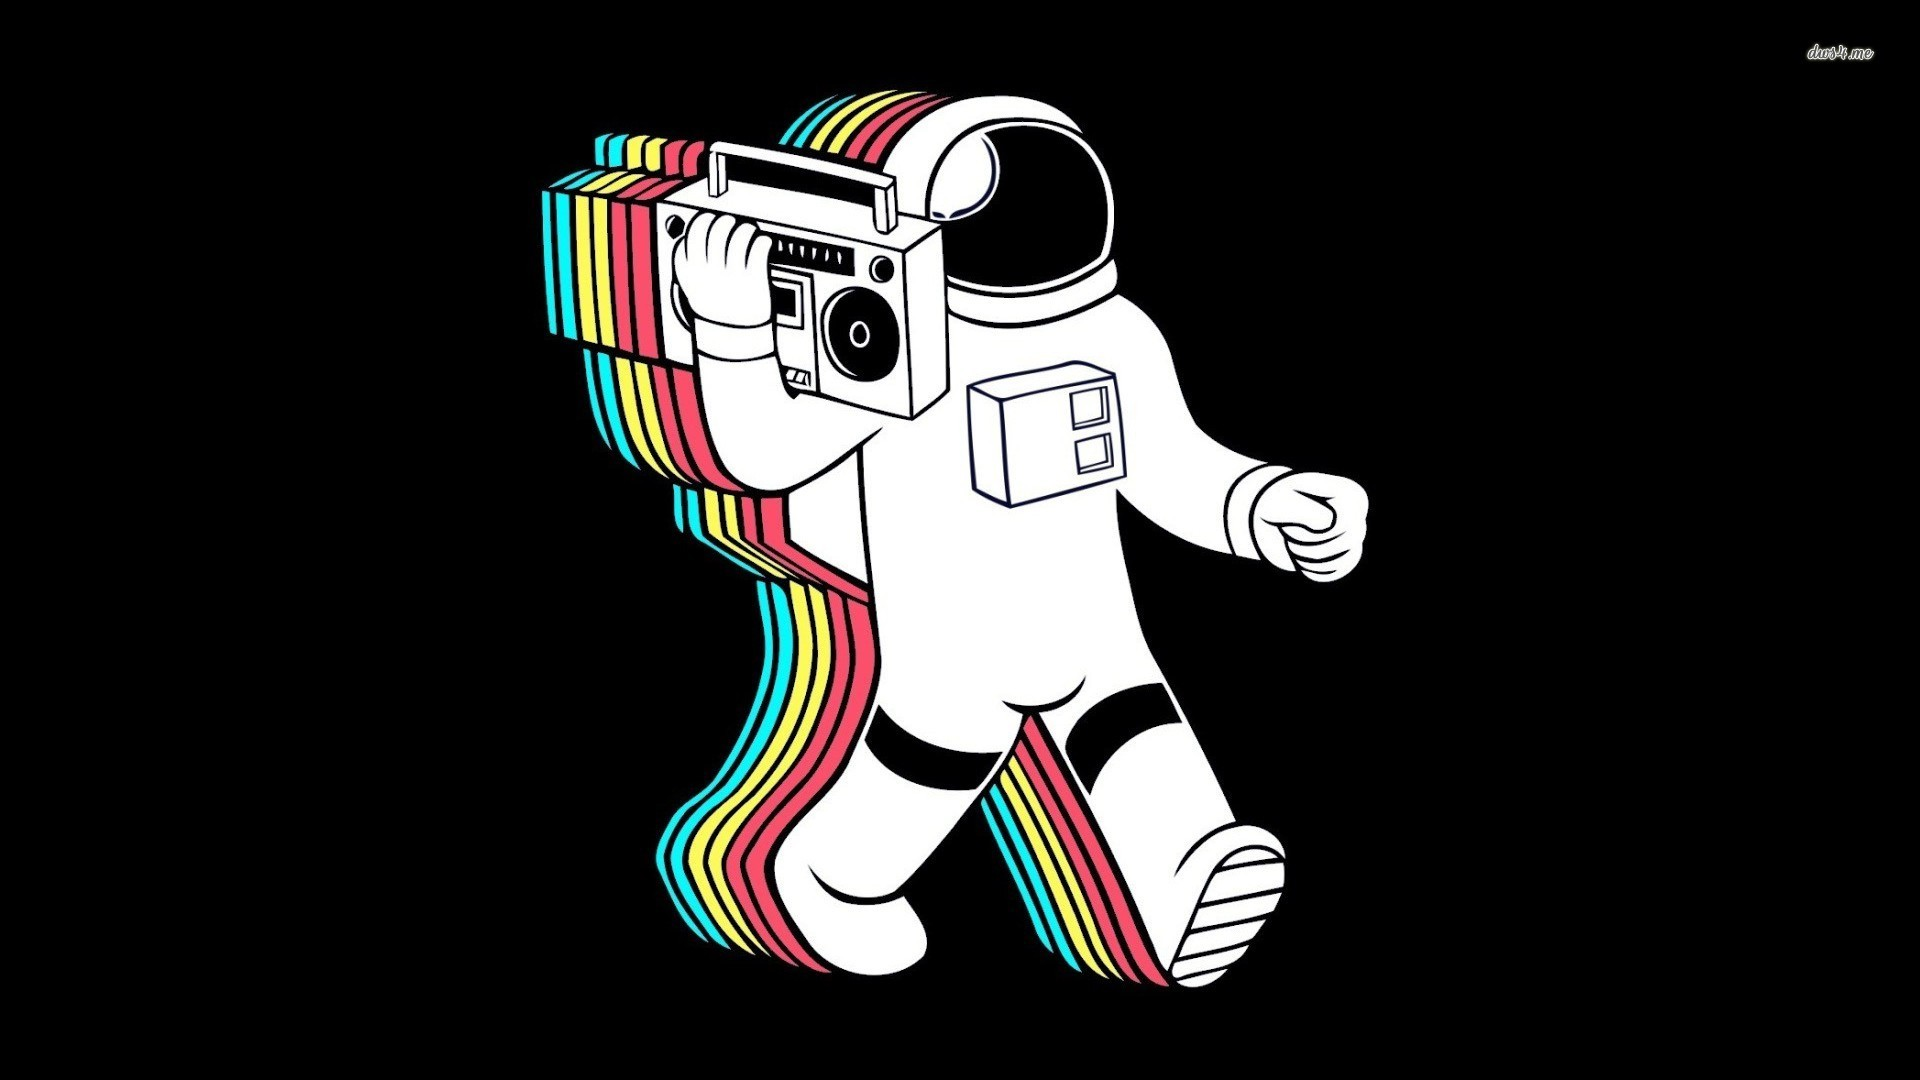 Res: 1920x1080, ... Astronaut and boombox wallpaper  ...